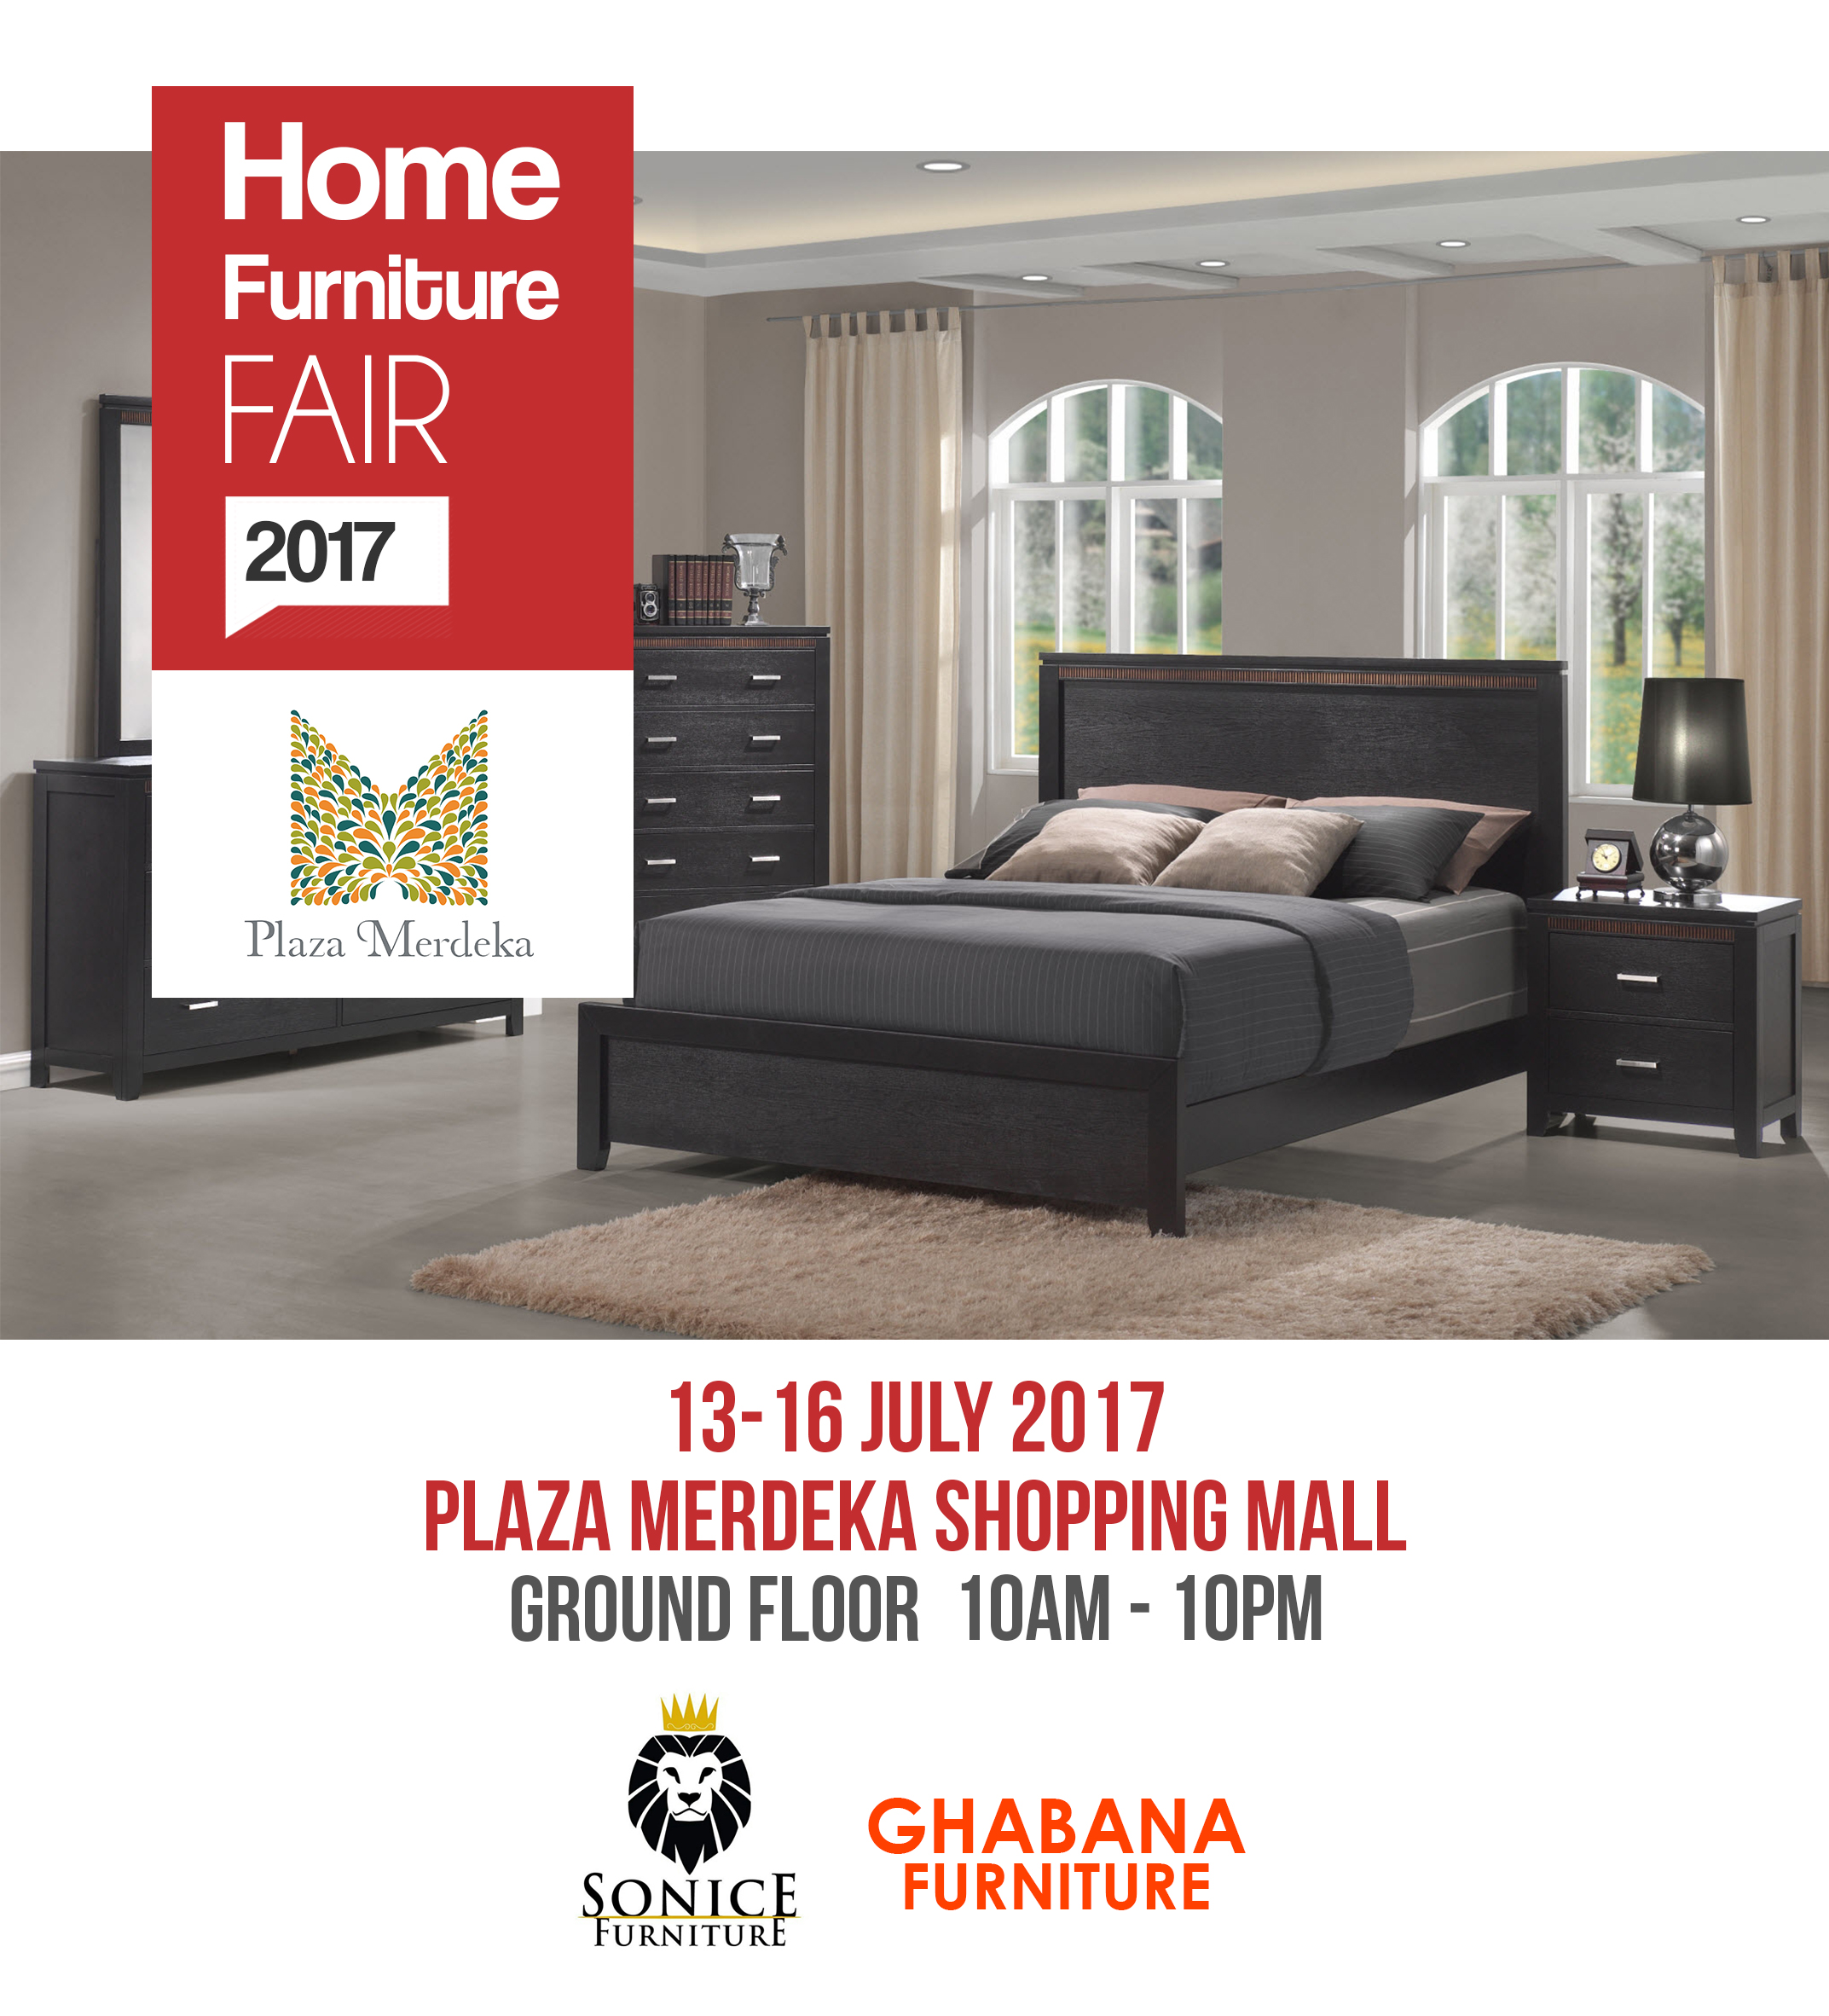 Home Furniture Fair 2017 13 16 July Ug Plaza Merdeka